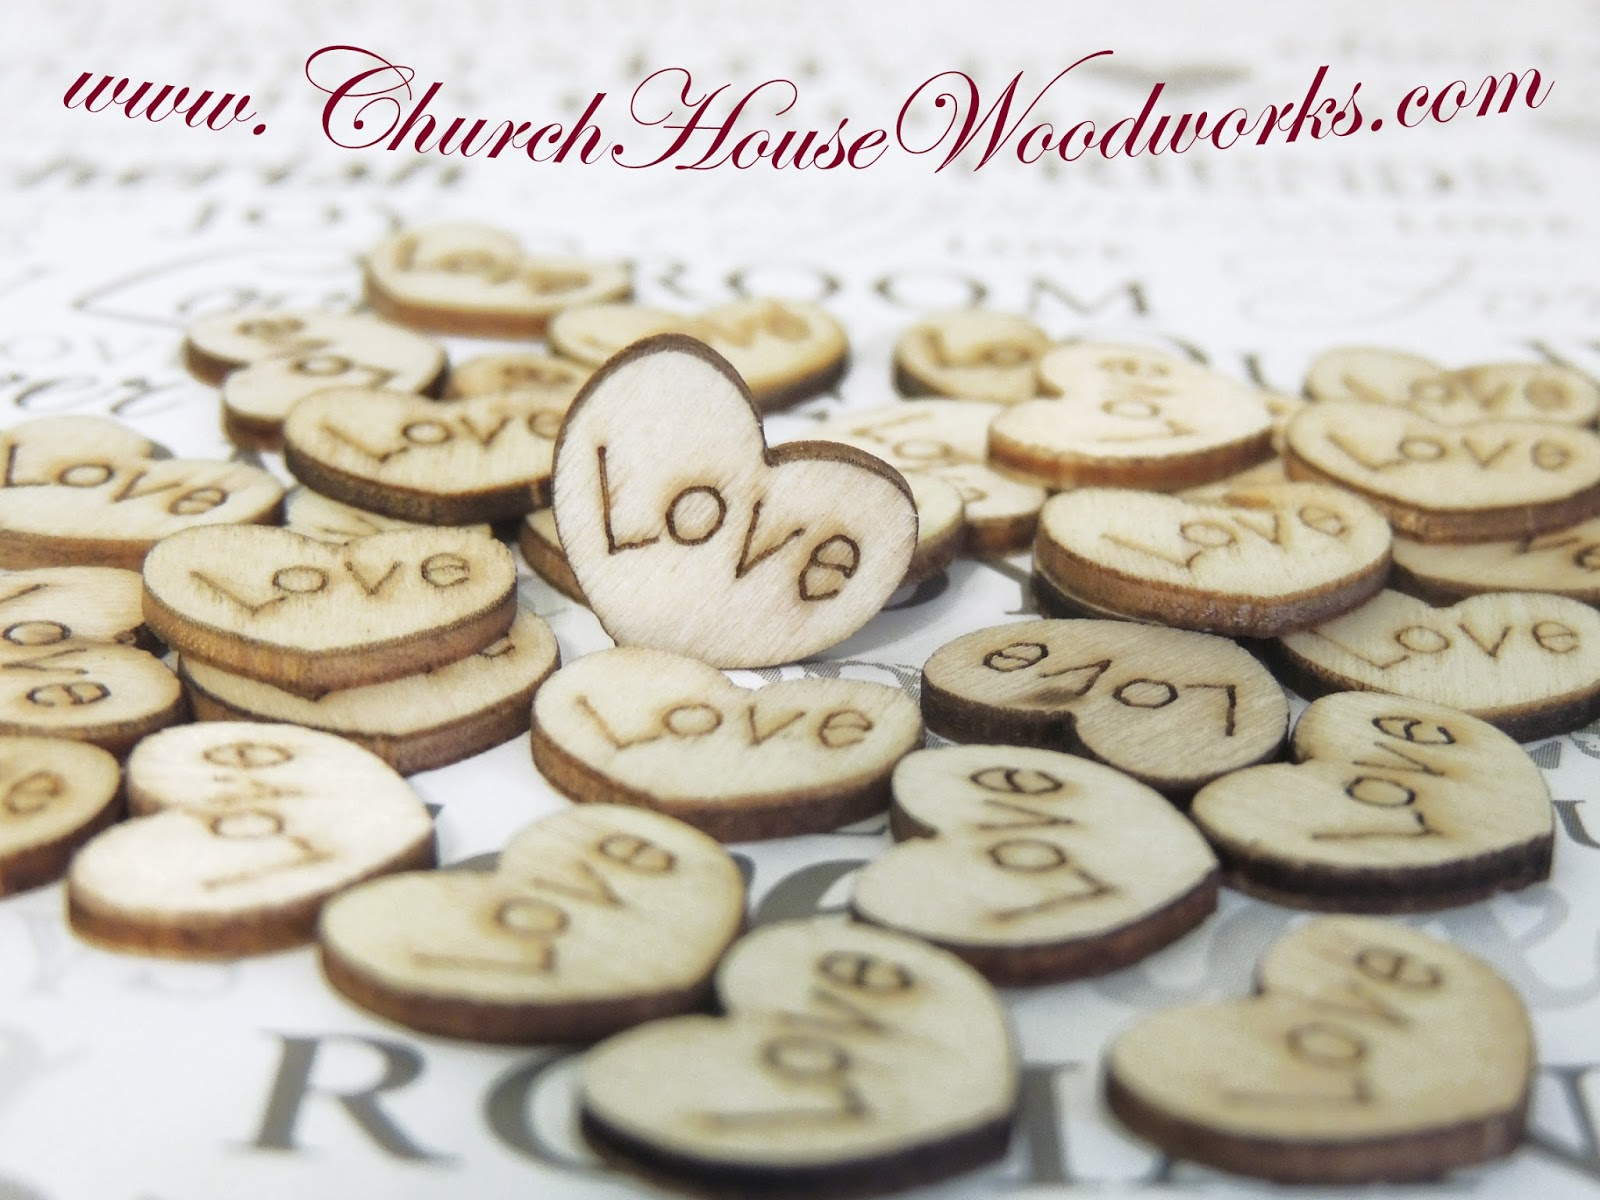 Amazing Wood Decorations for Weddings – Wedding